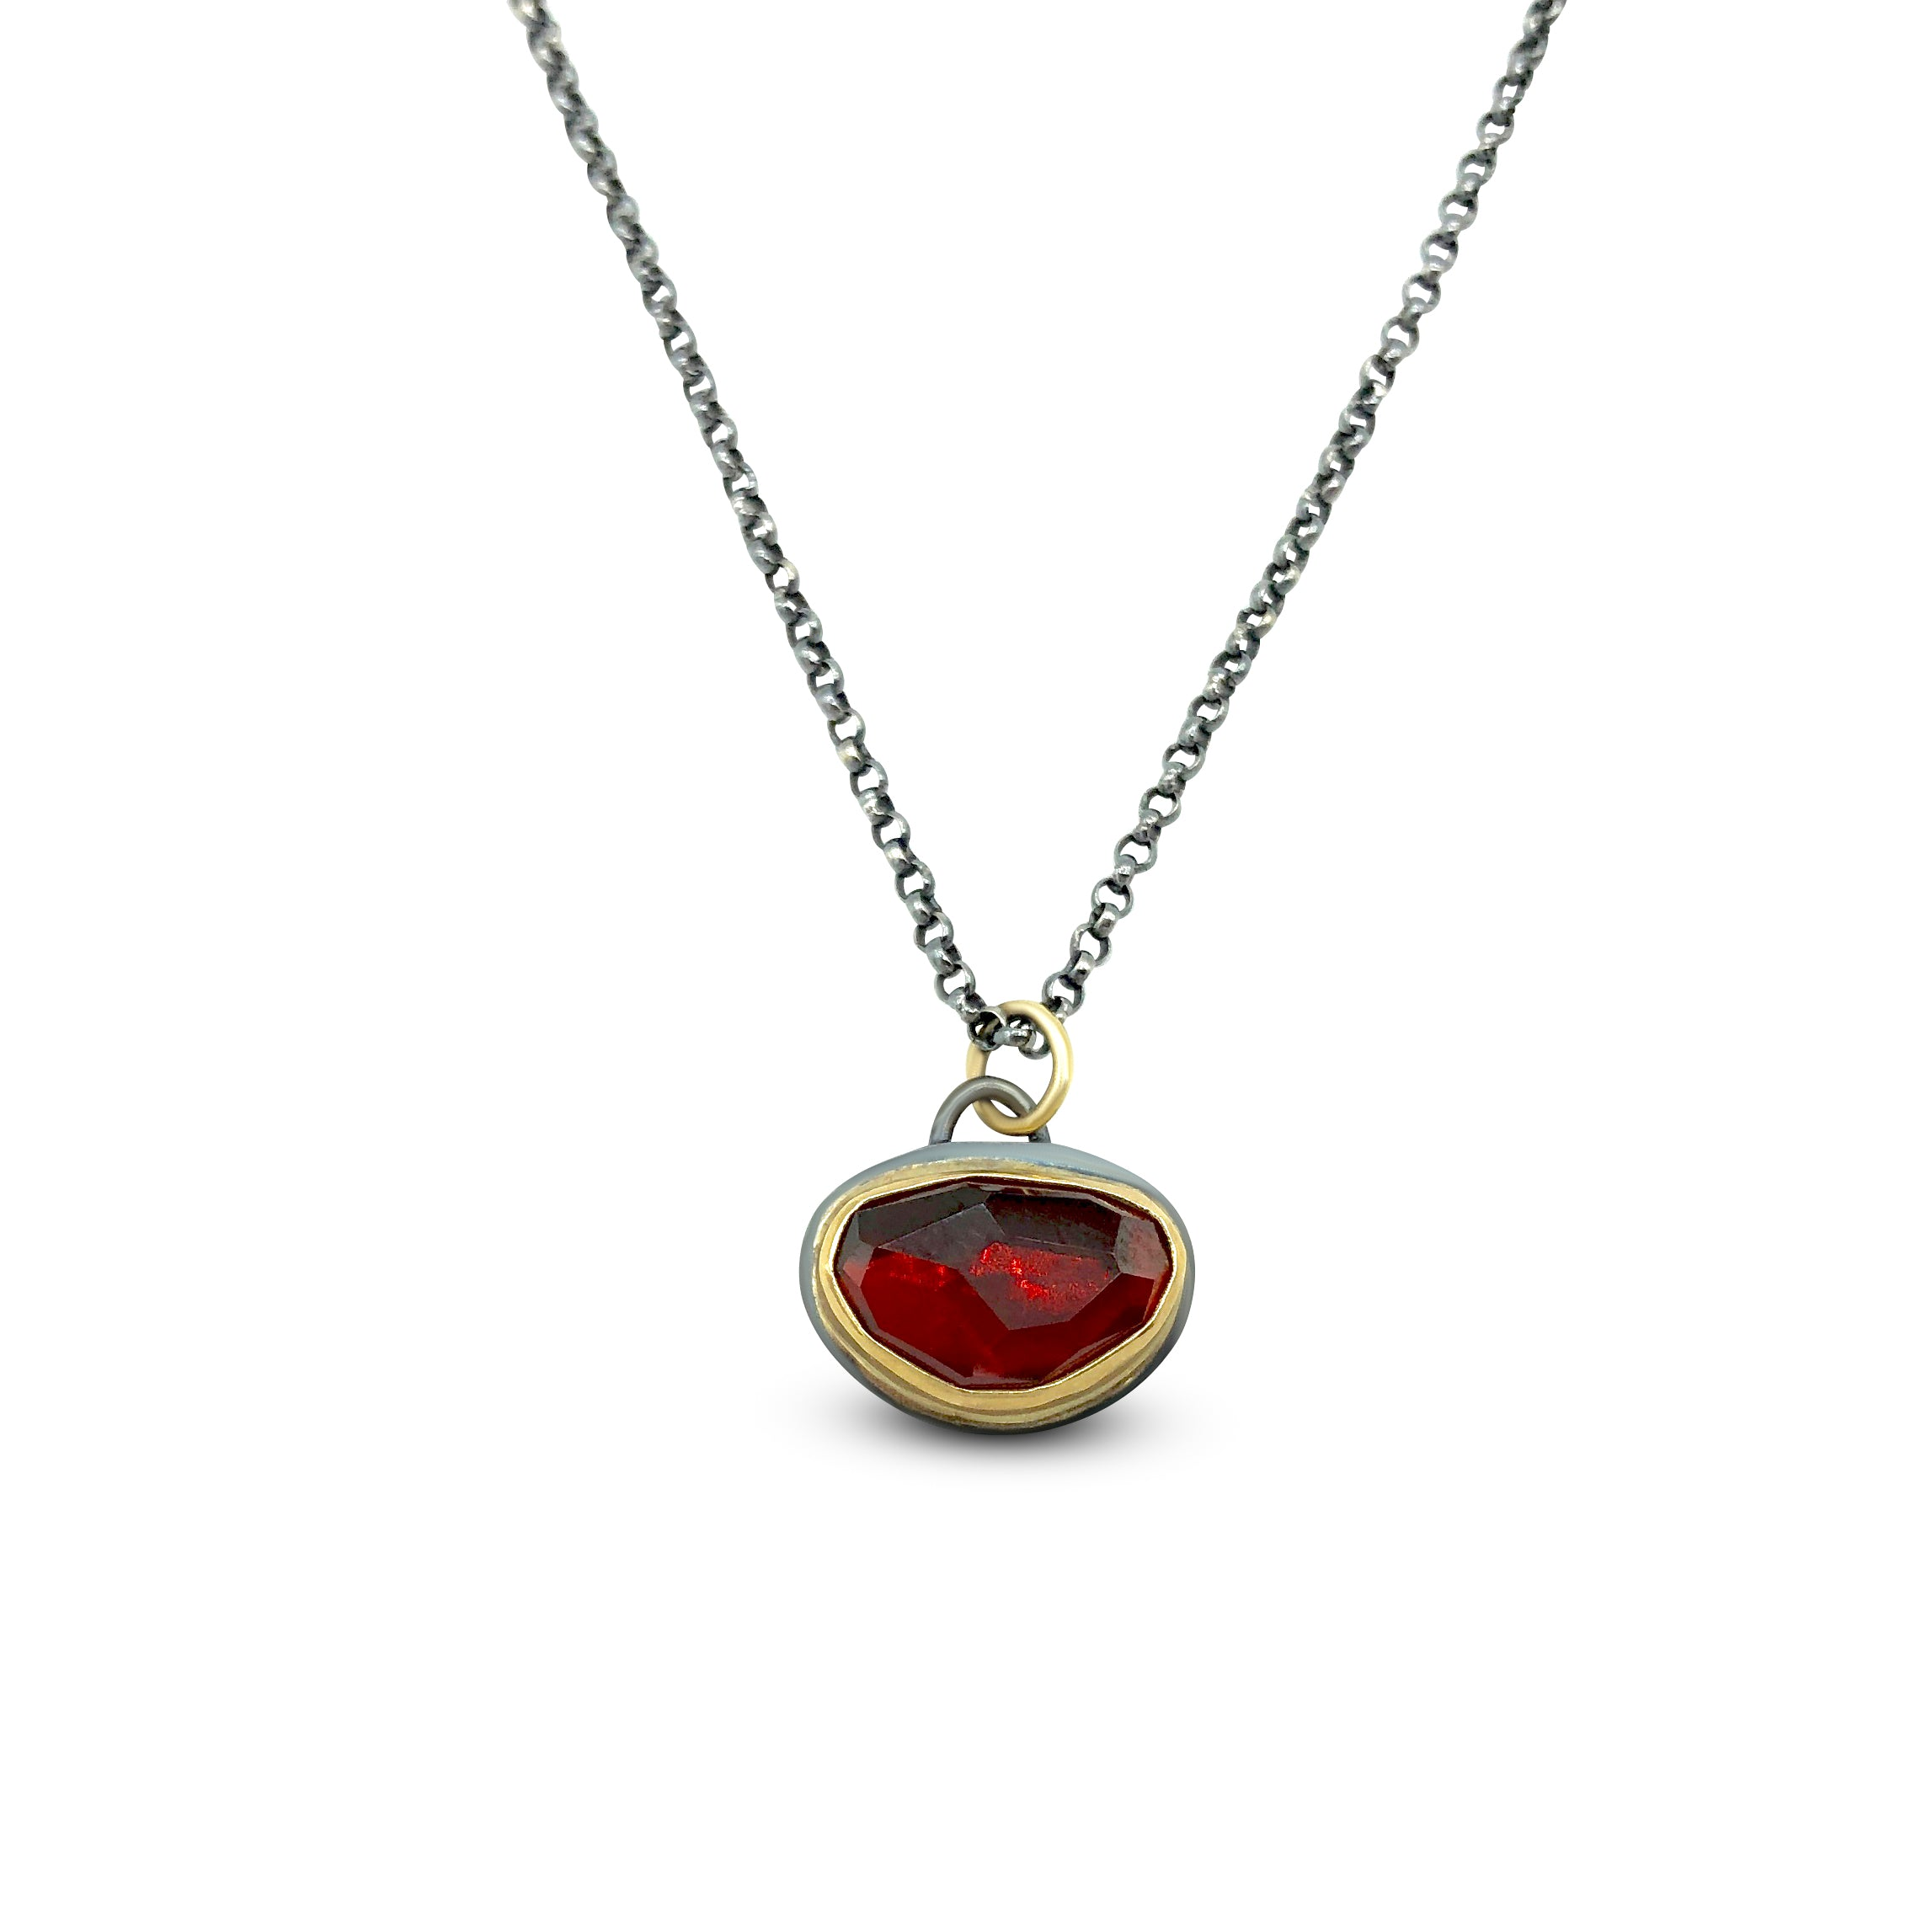 18k Gold Rose Cut Garnet Sterling Silver Necklace